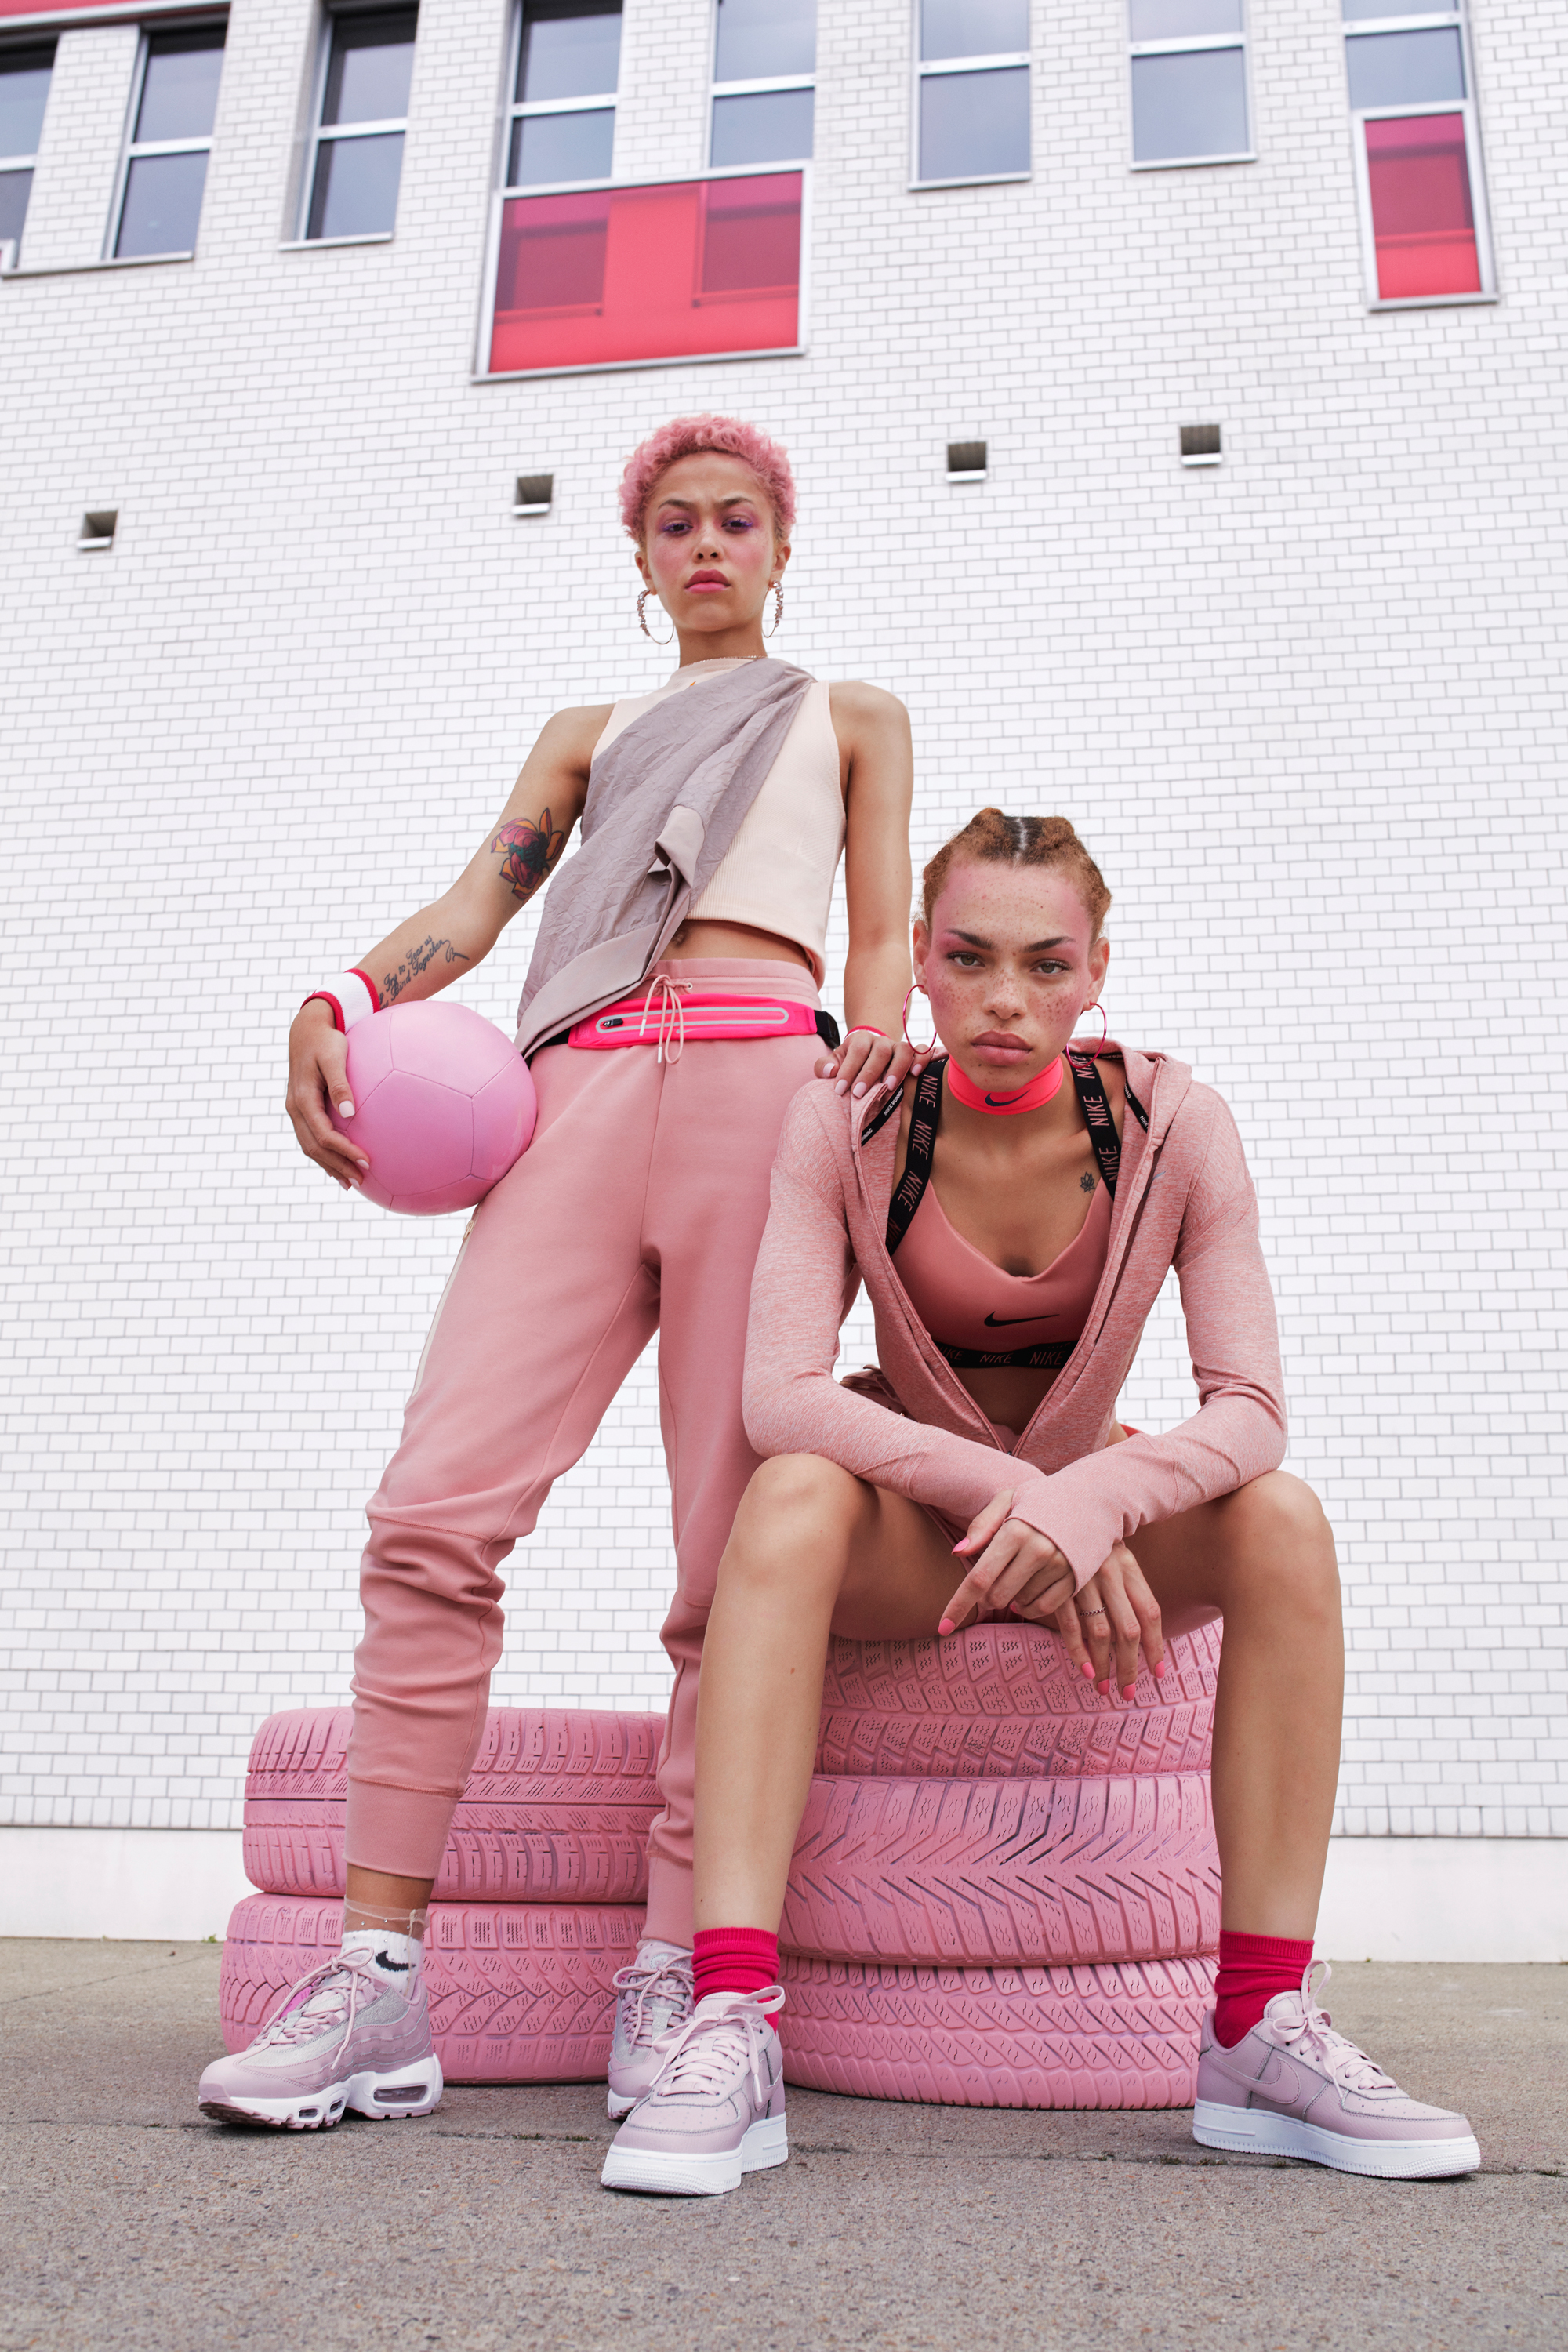 180618_NIKE-F18_S05_Pink_is_Power_Look07-08_1216_F3